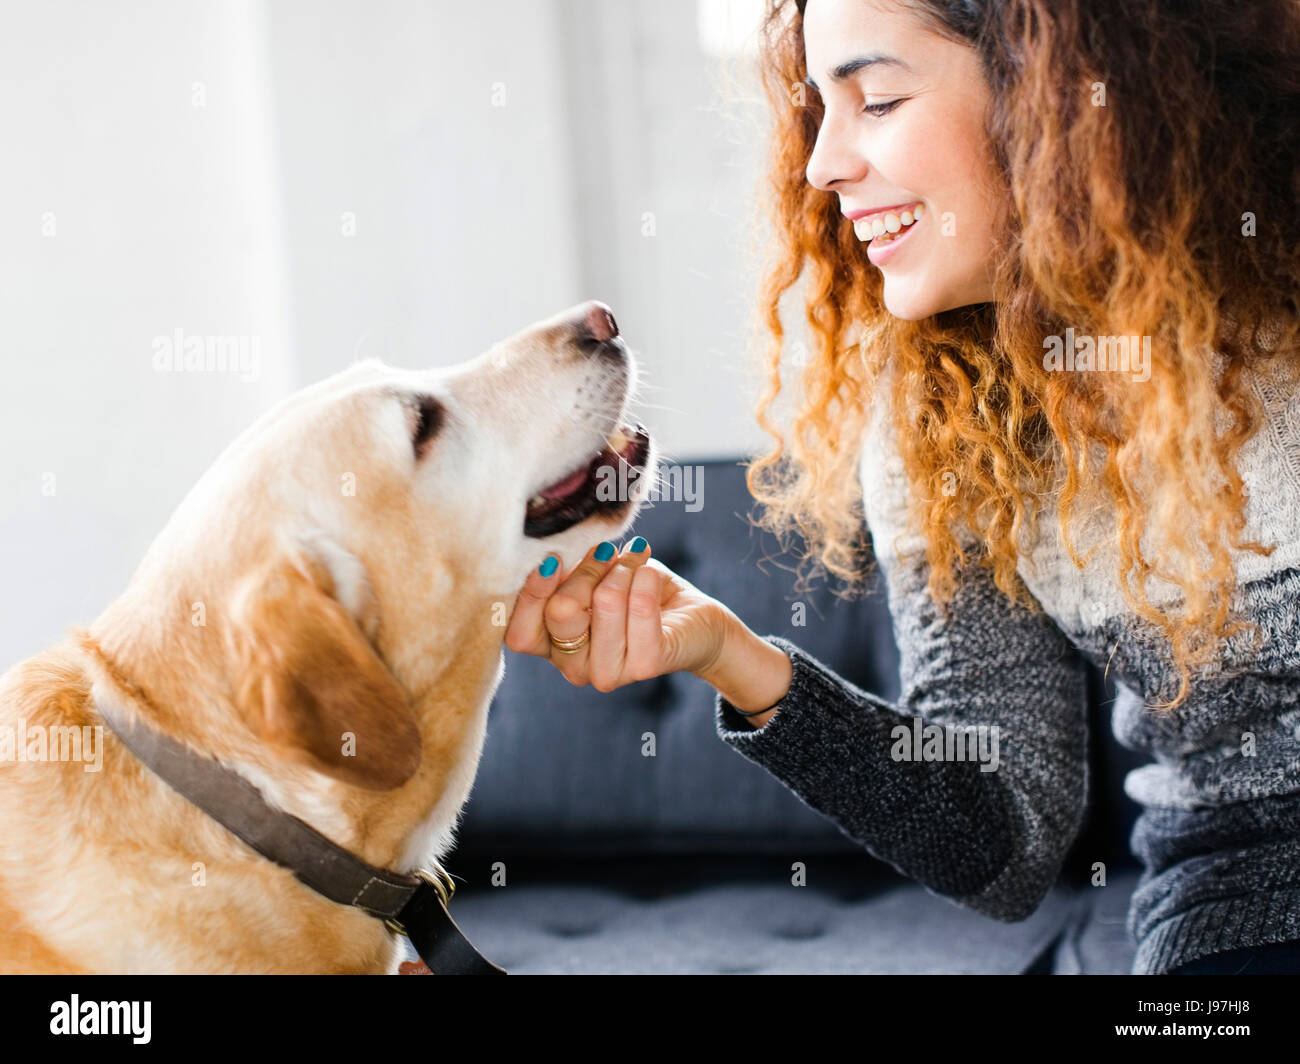 Smiling woman stroking dog in living room - Stock Image